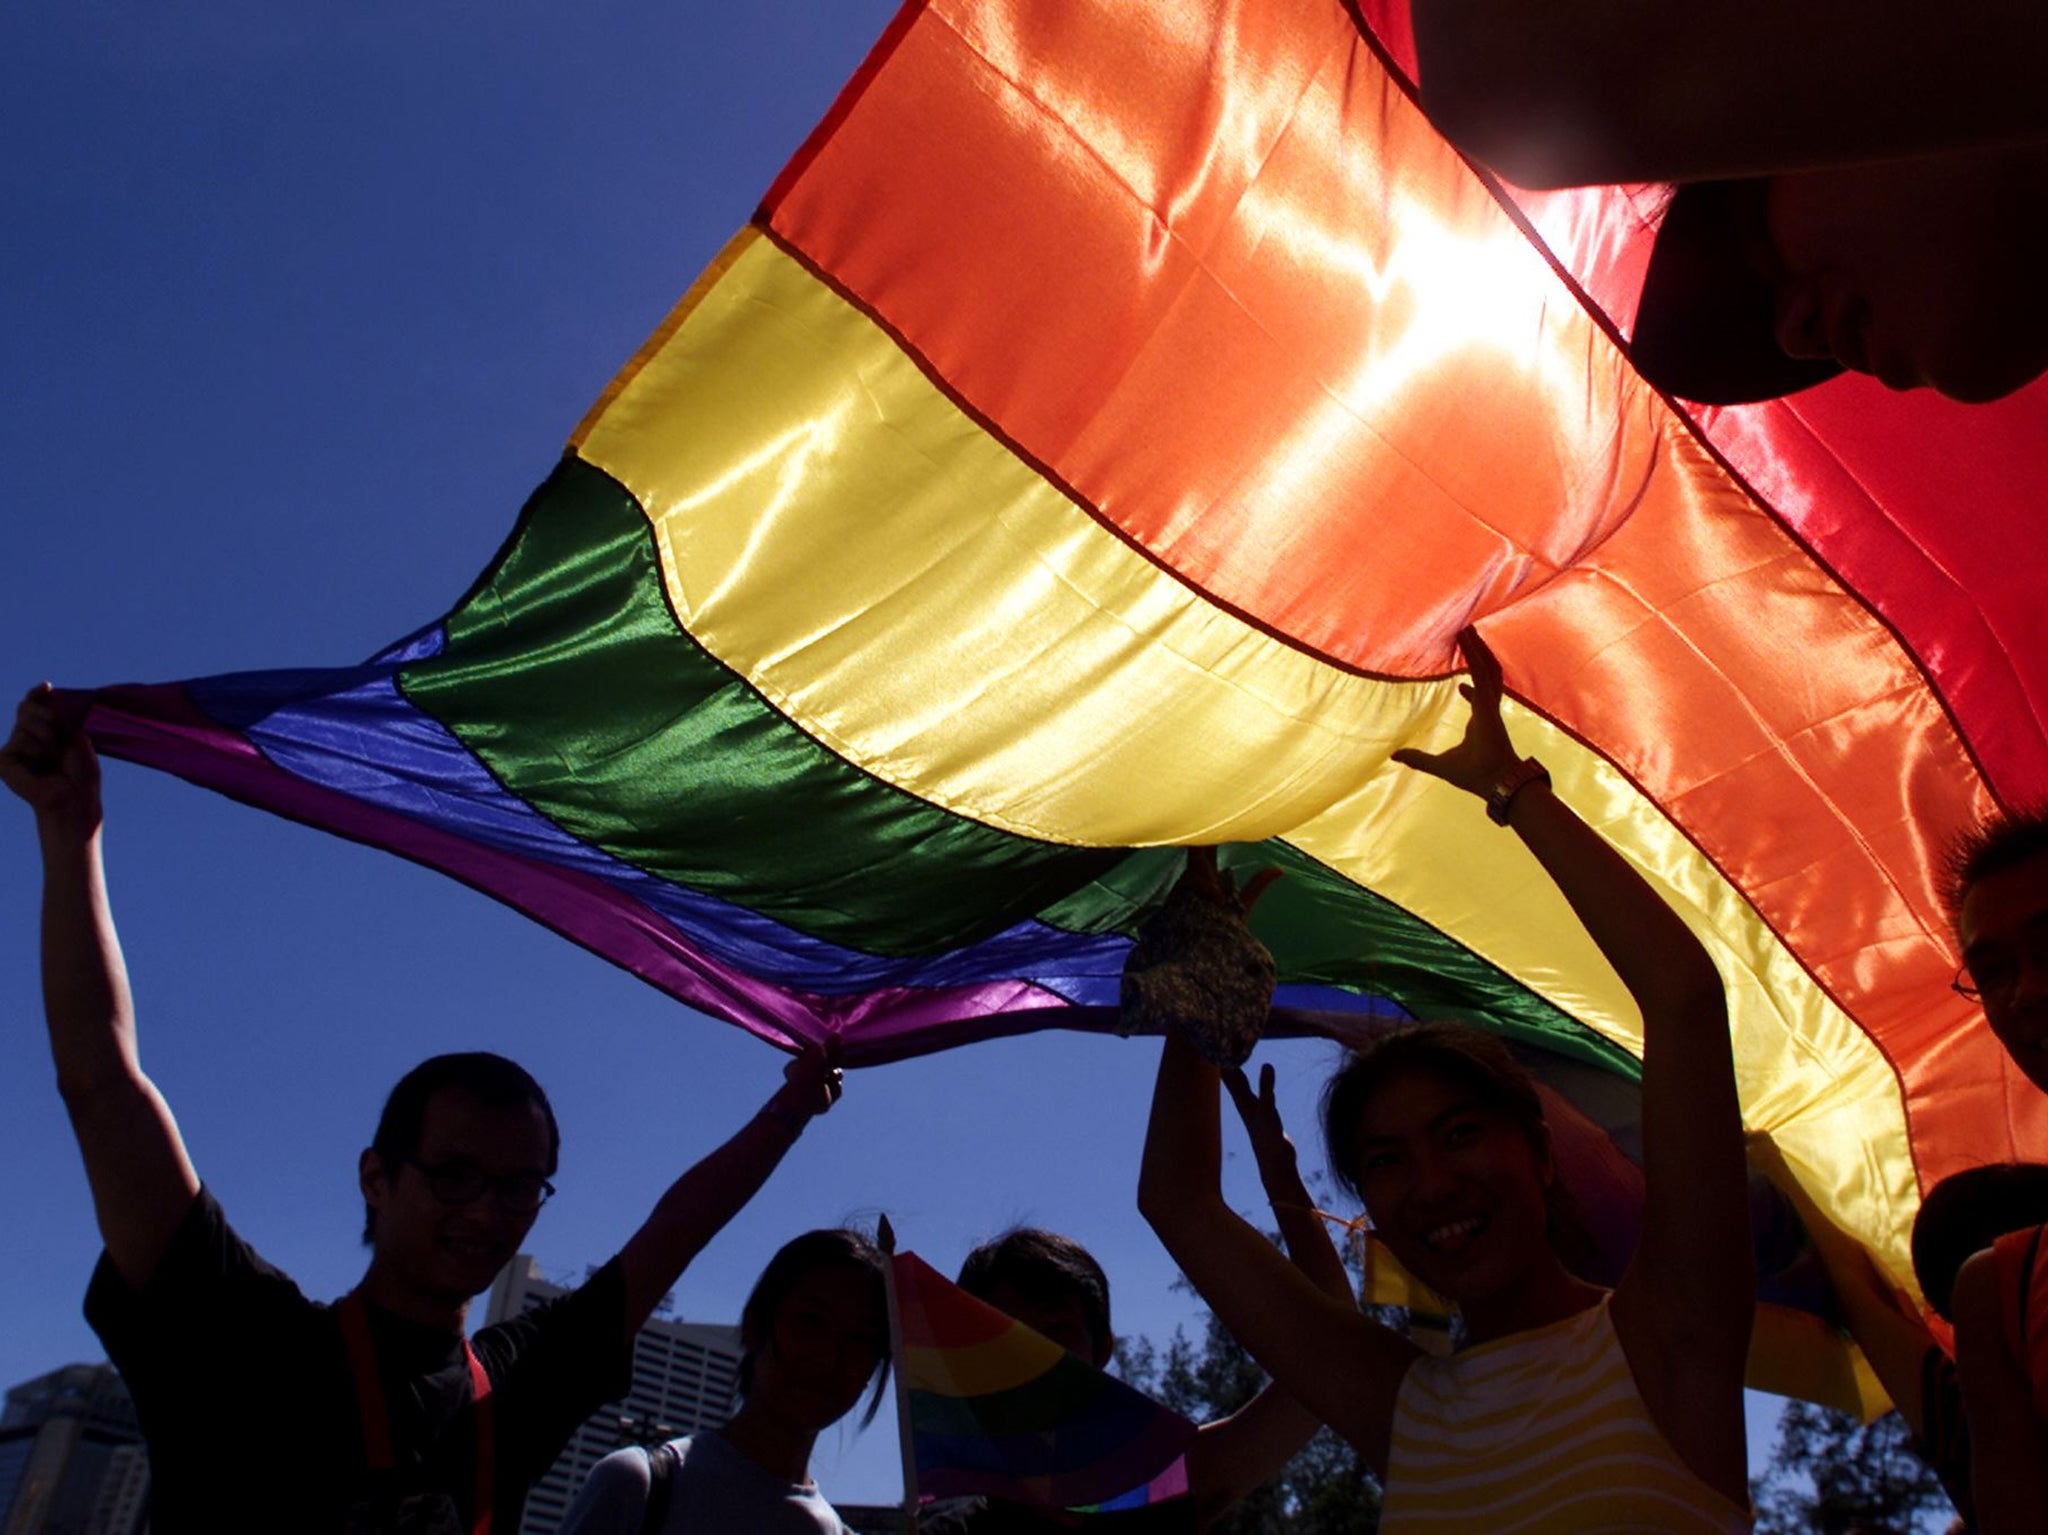 Brunei Shariah Law Applies Death Sentence For Homosexuality